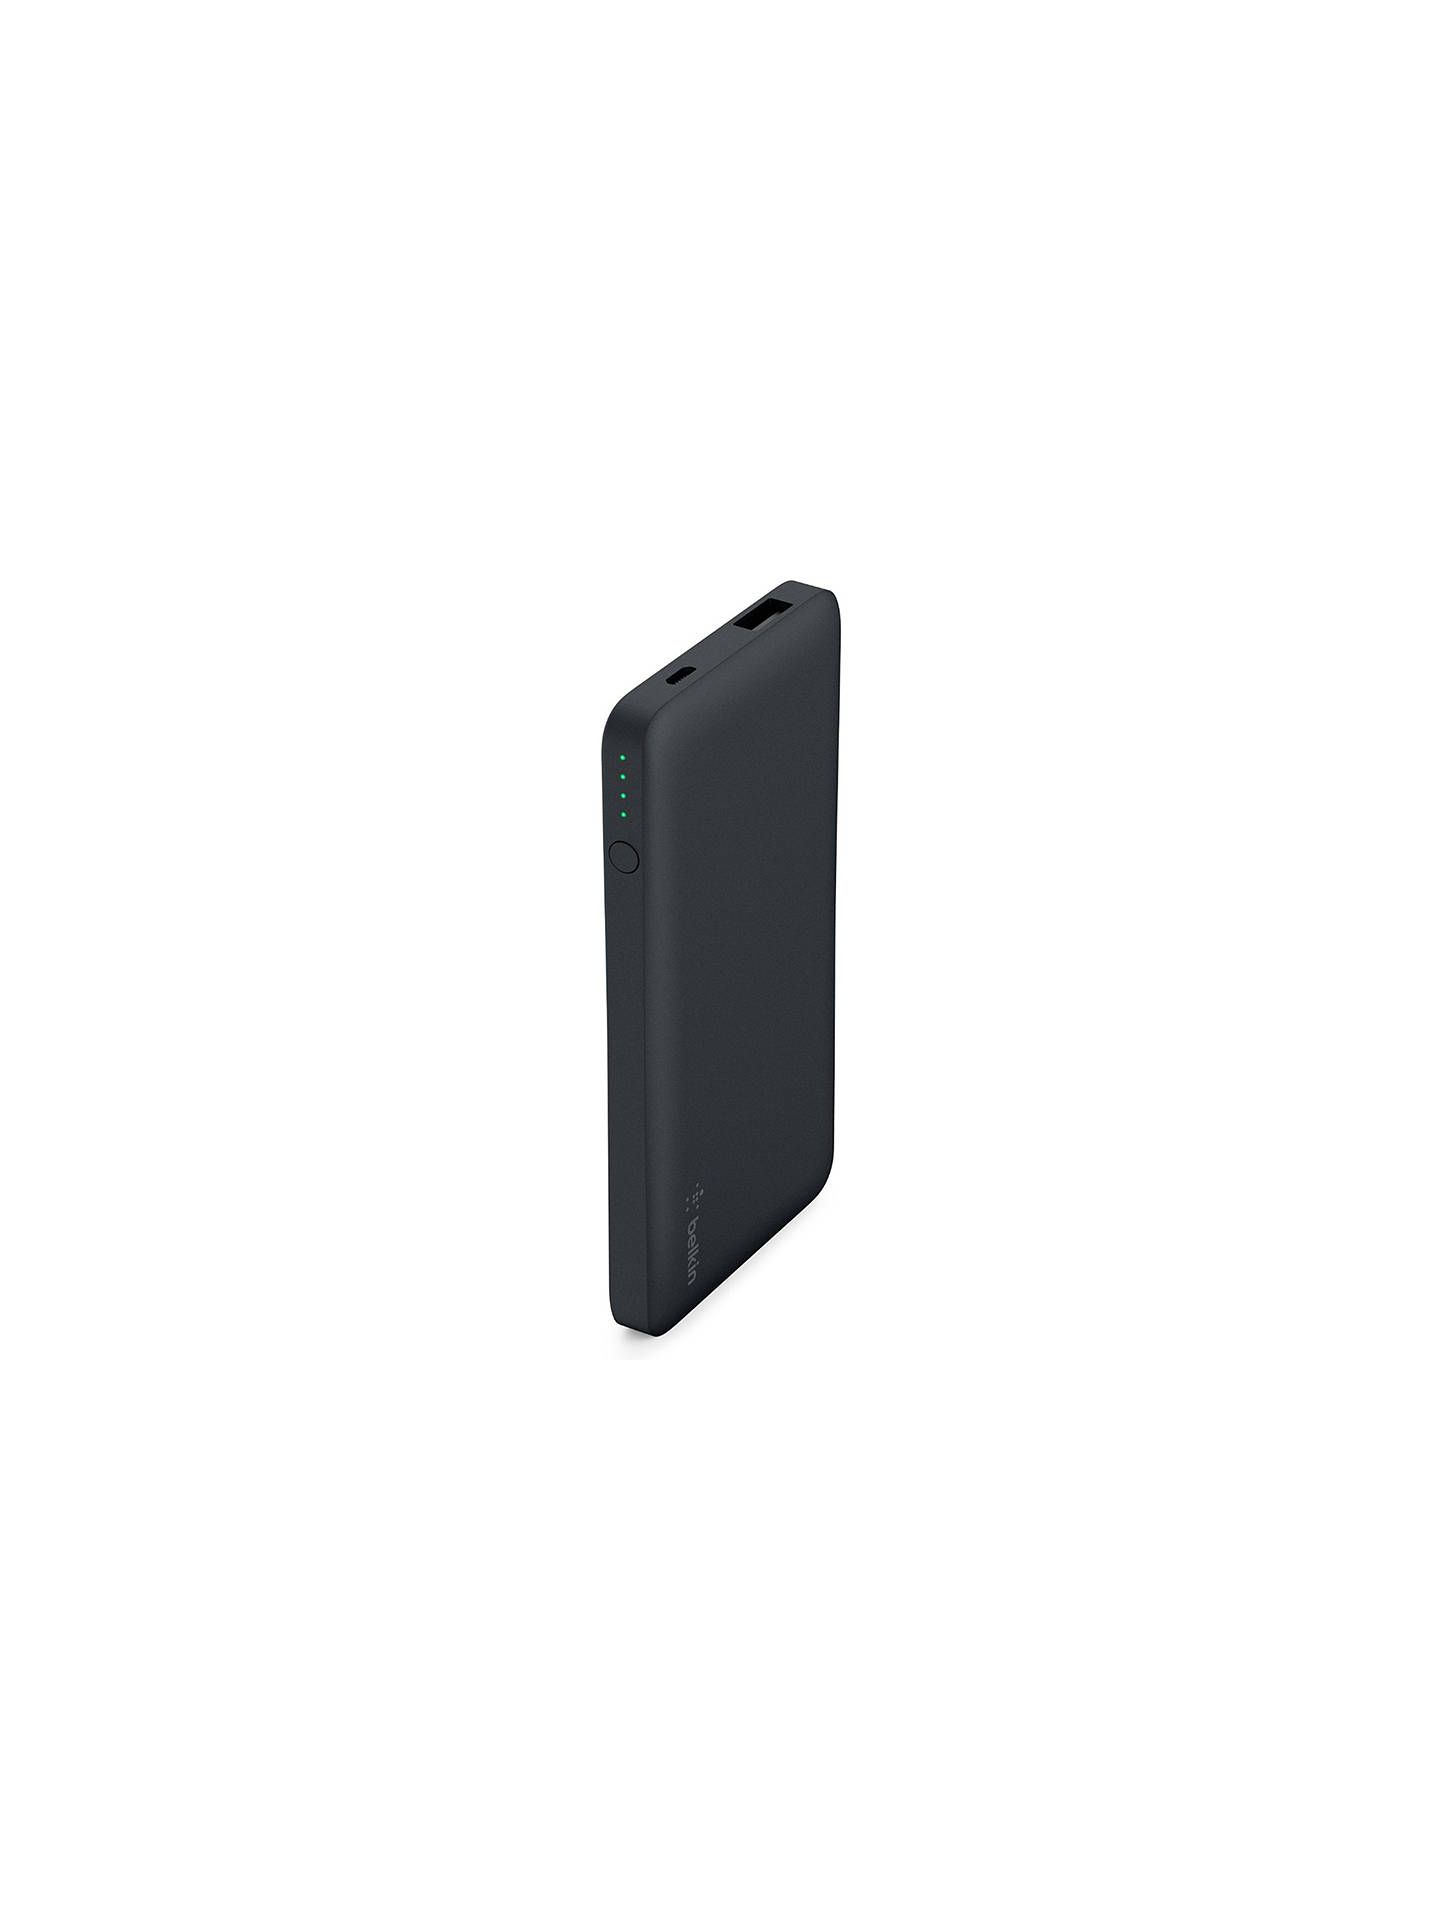 Buy Belkin Pocket Power 5K Portable Power Bank, Black Online at johnlewis.com